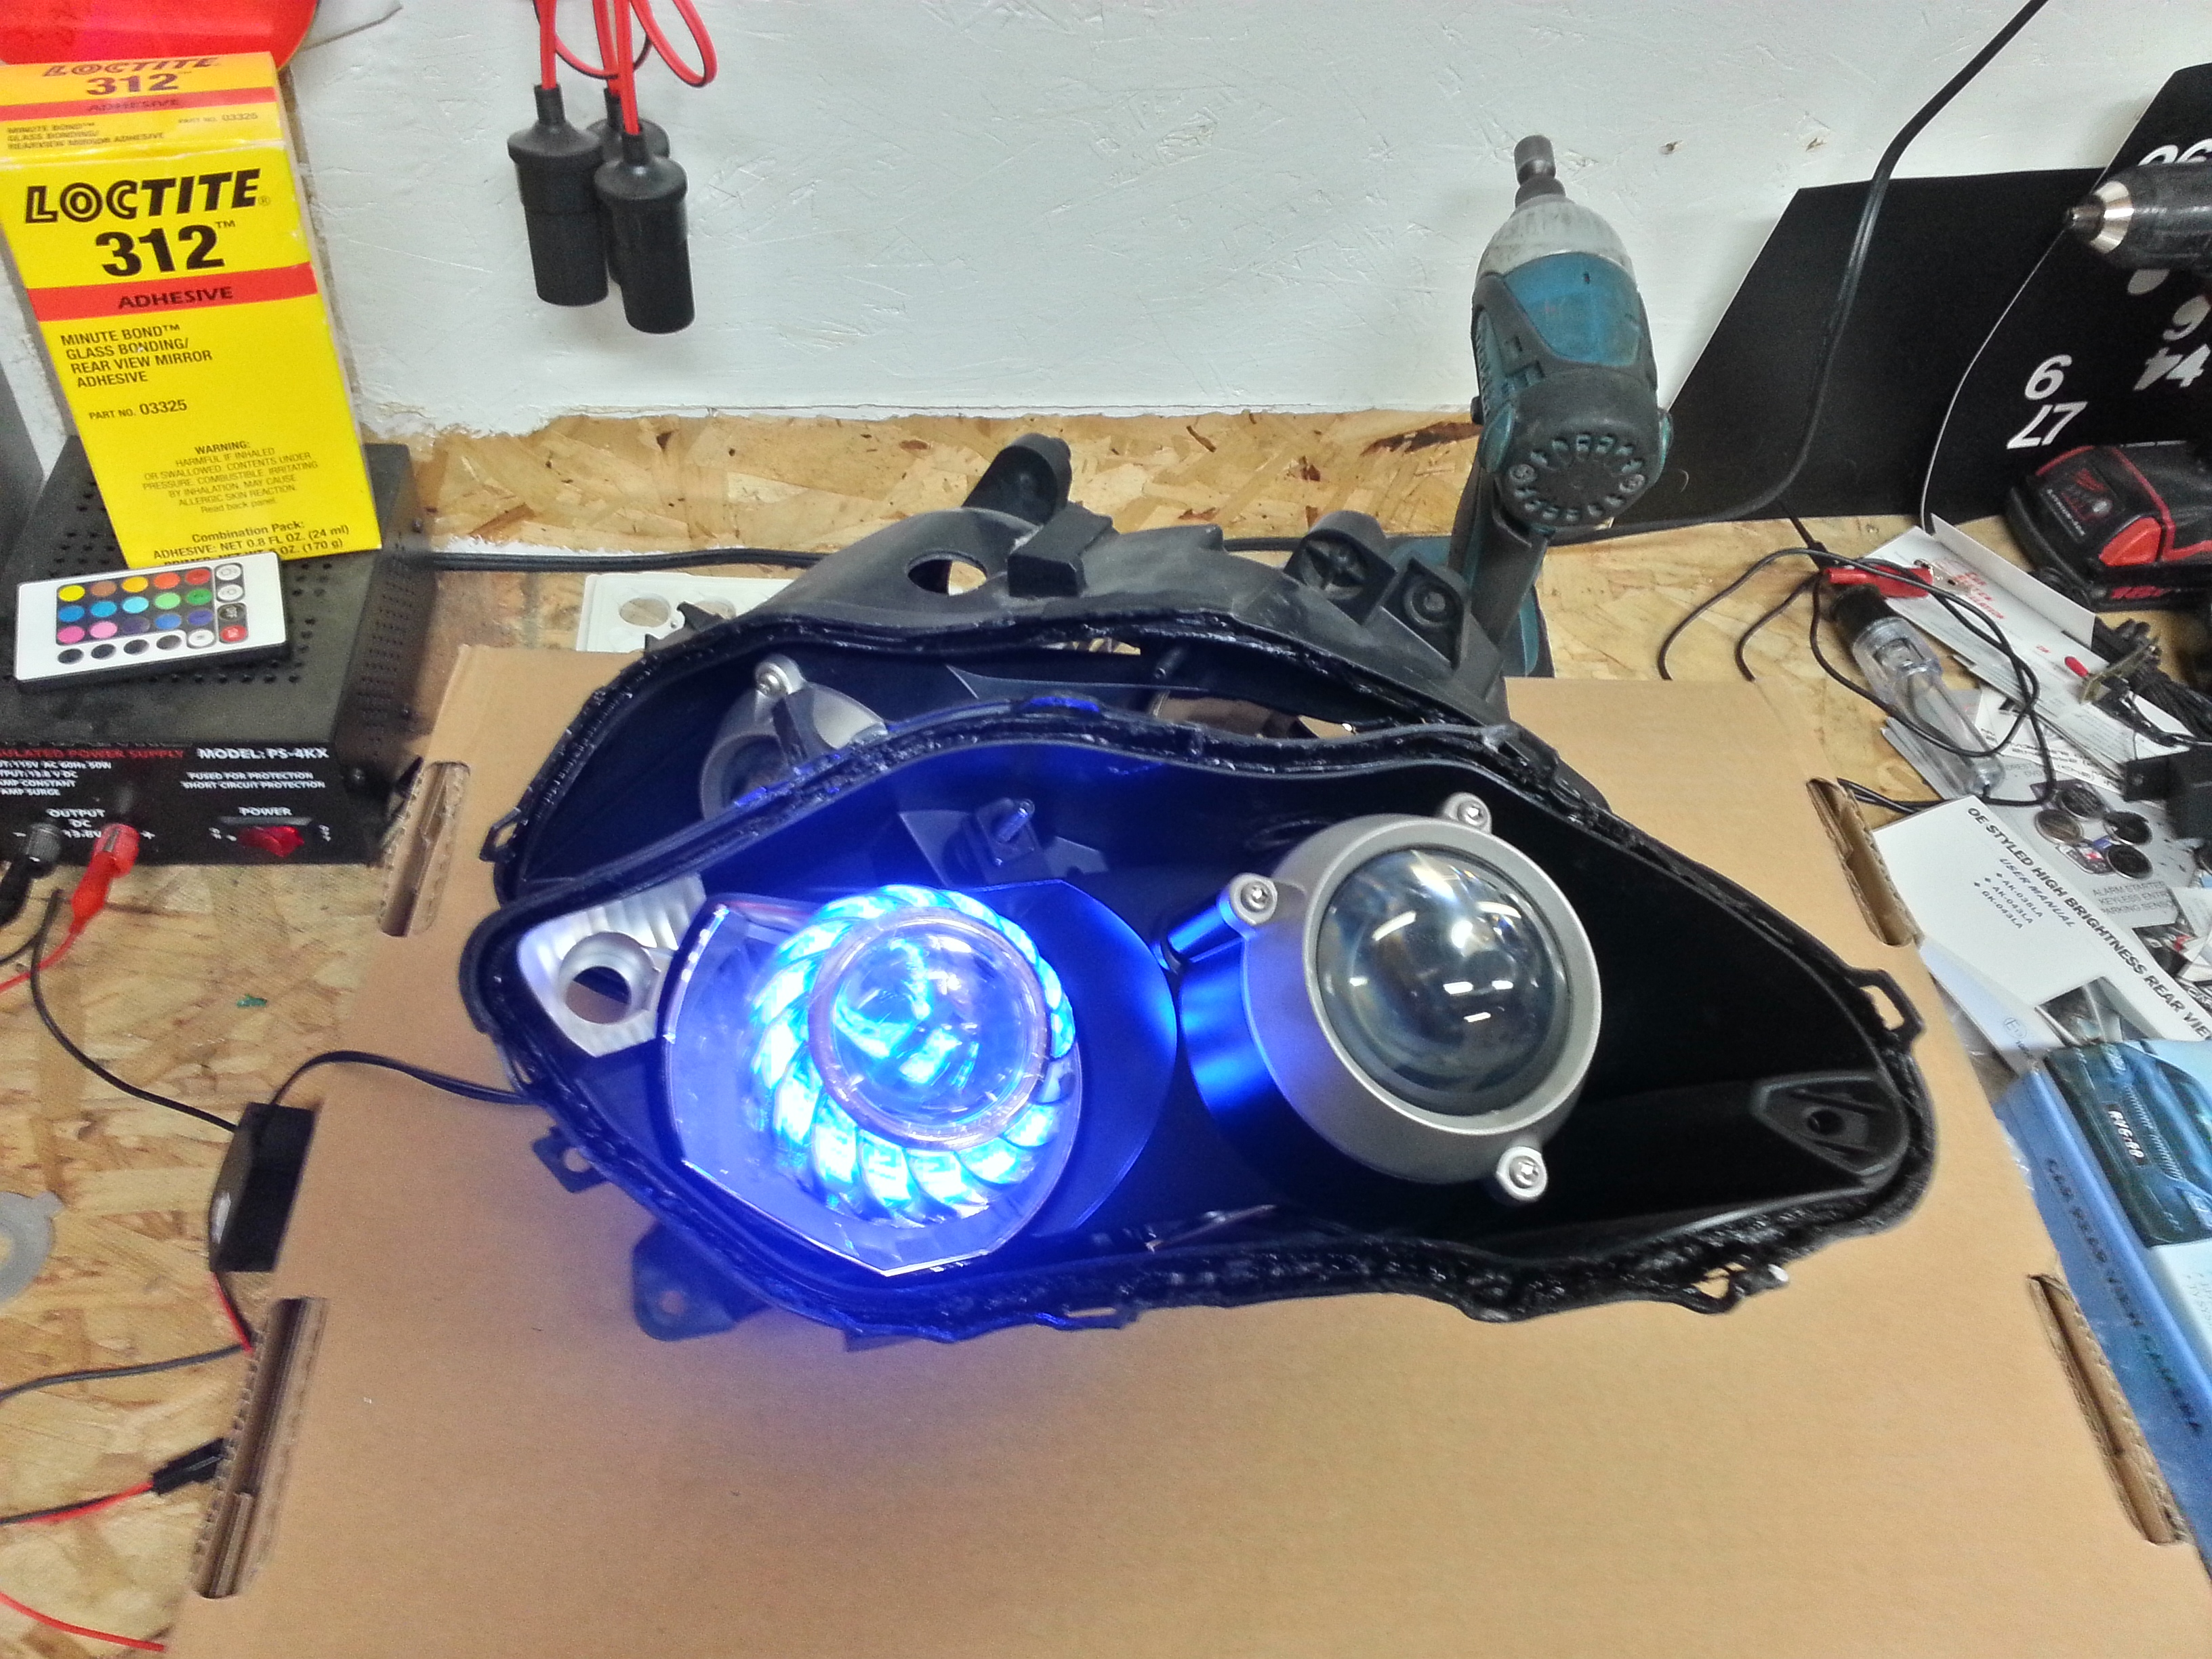 MOTORCYCLE HID PROJECTOR WITH ANGLE EYE